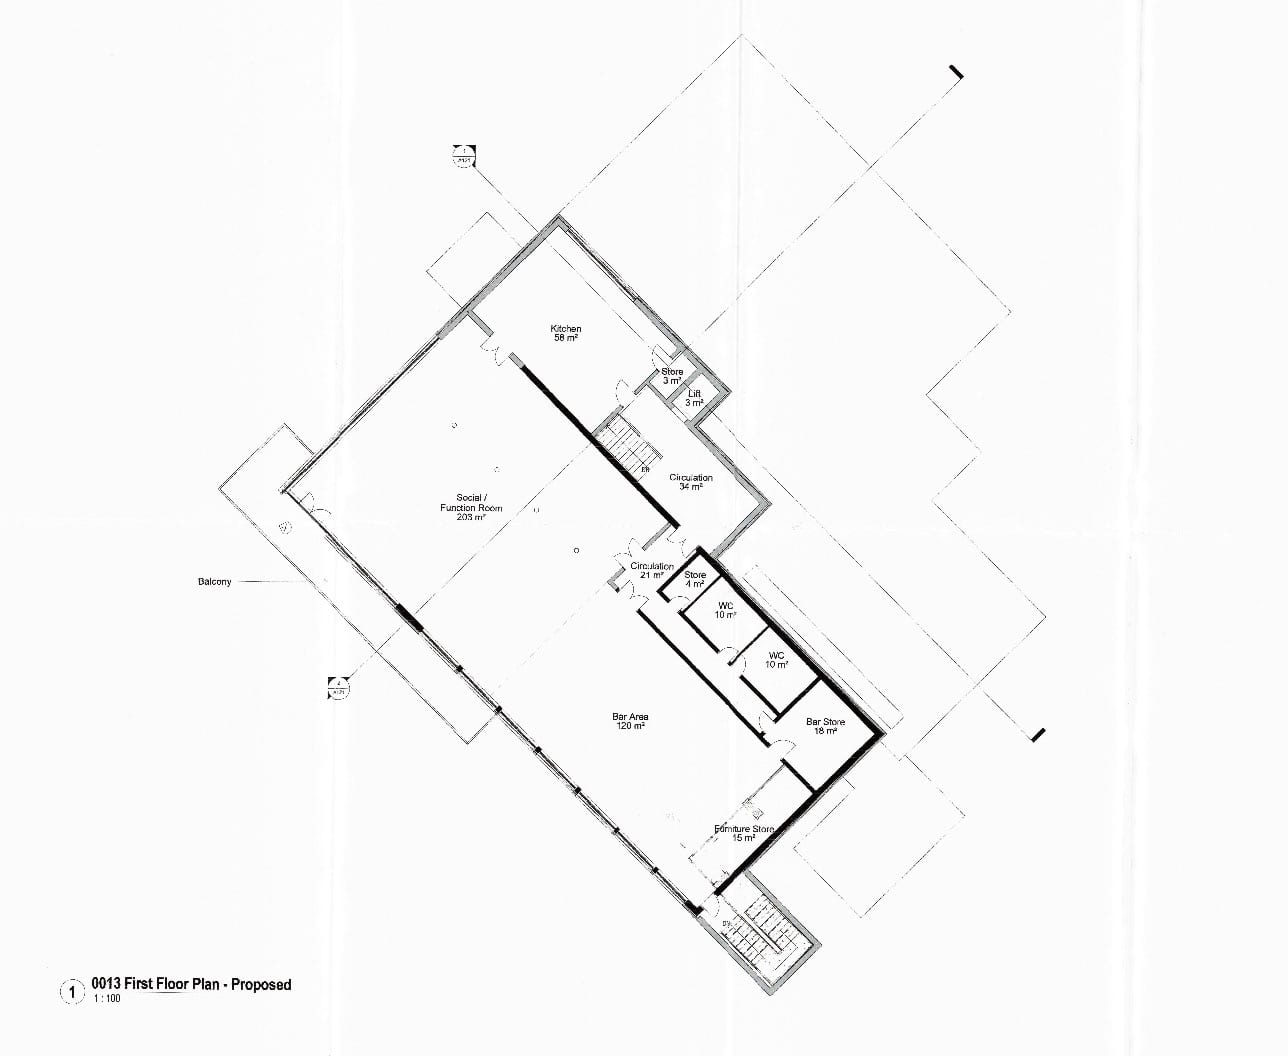 Proposed first floor plans